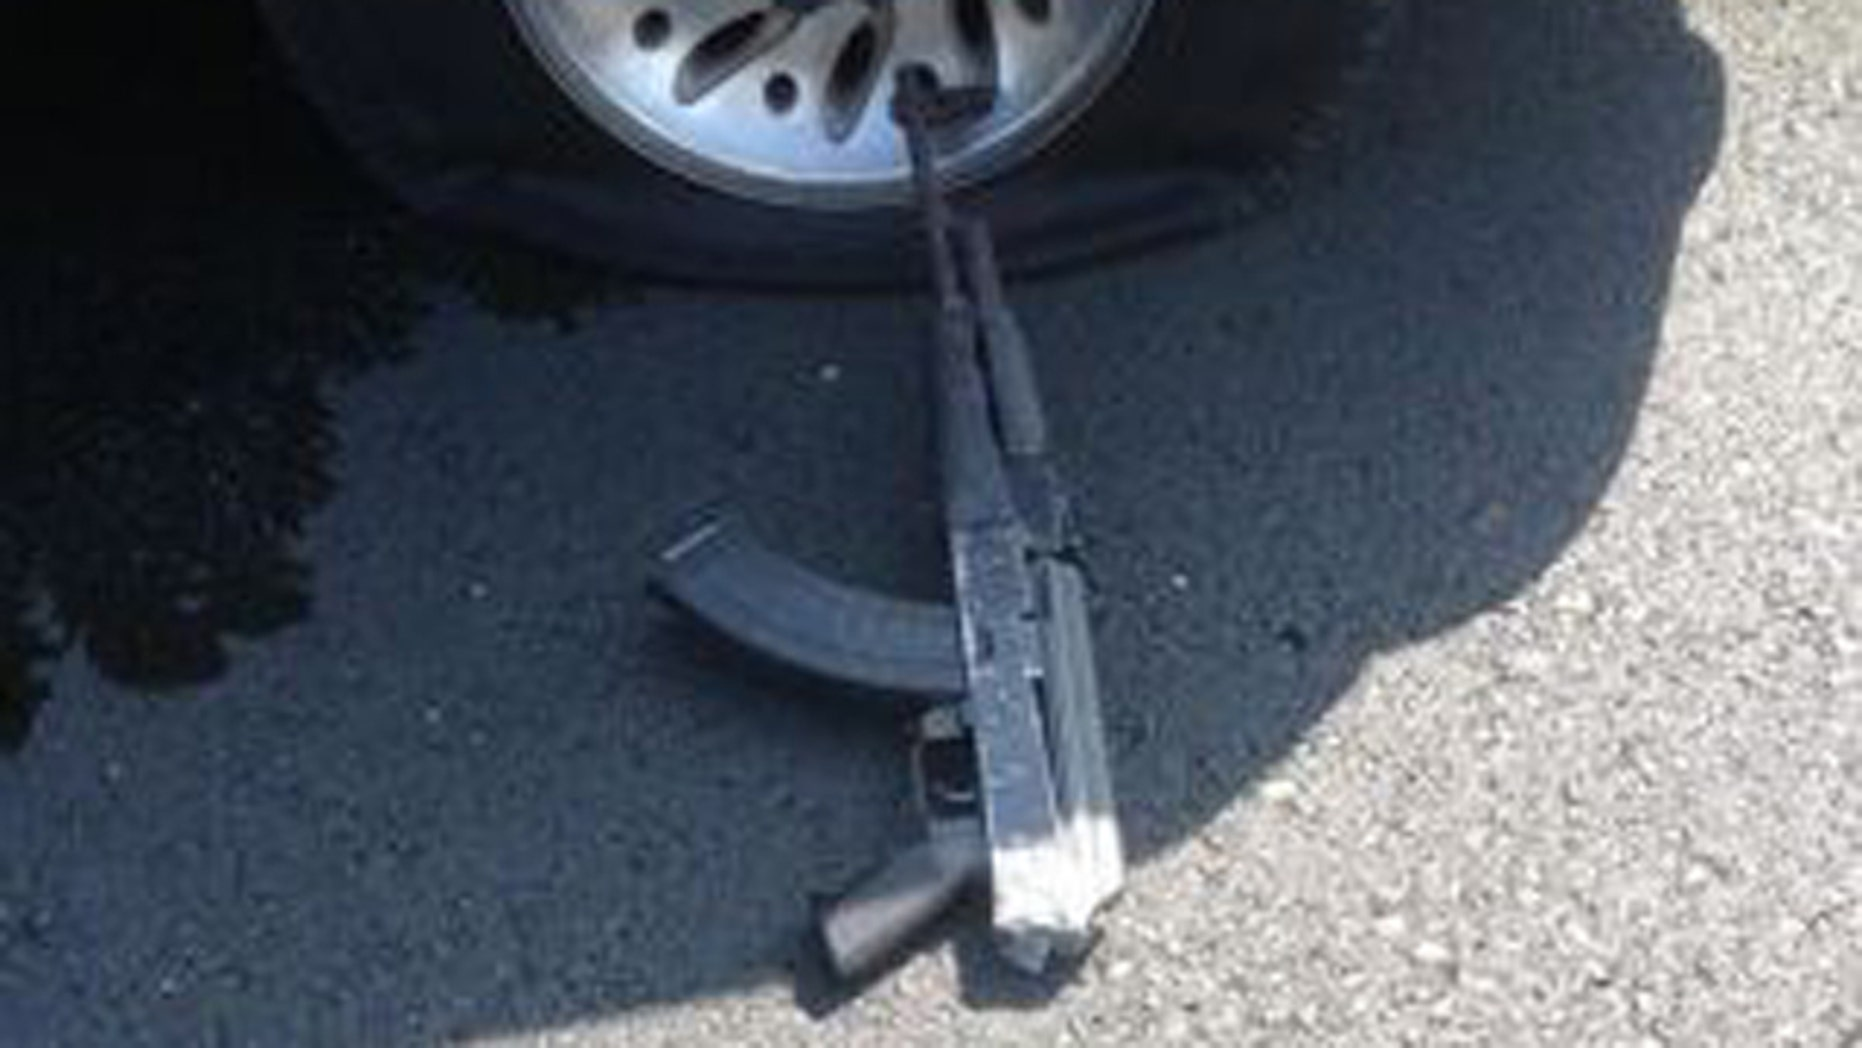 July 16, 2014: This photo shows a gun used by one of three bank robbers following a high-speed chase and gun battle in Stockton, California (Stockton Police Department)